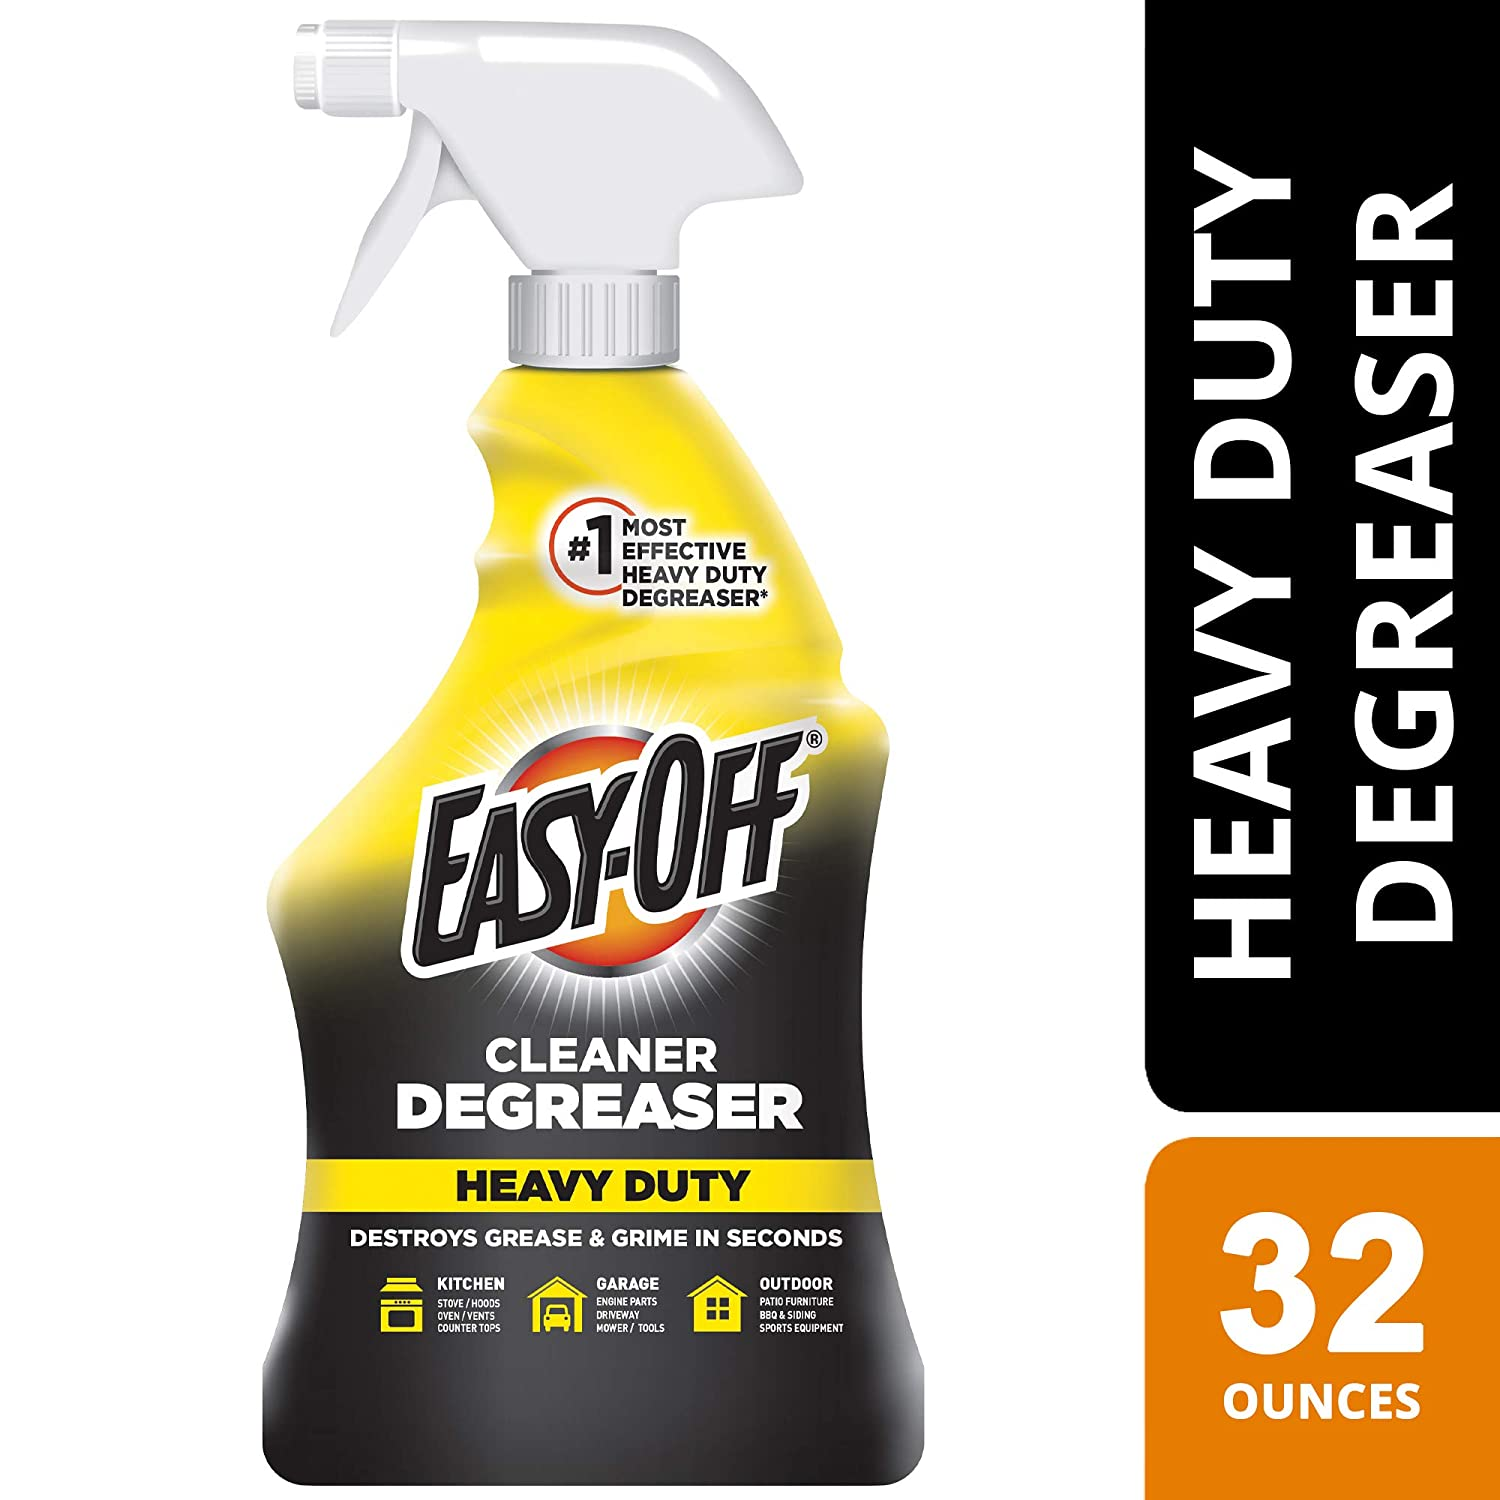 Easy Off Heavy Duty Degreaser Cleaner Spray, 32 Ounce